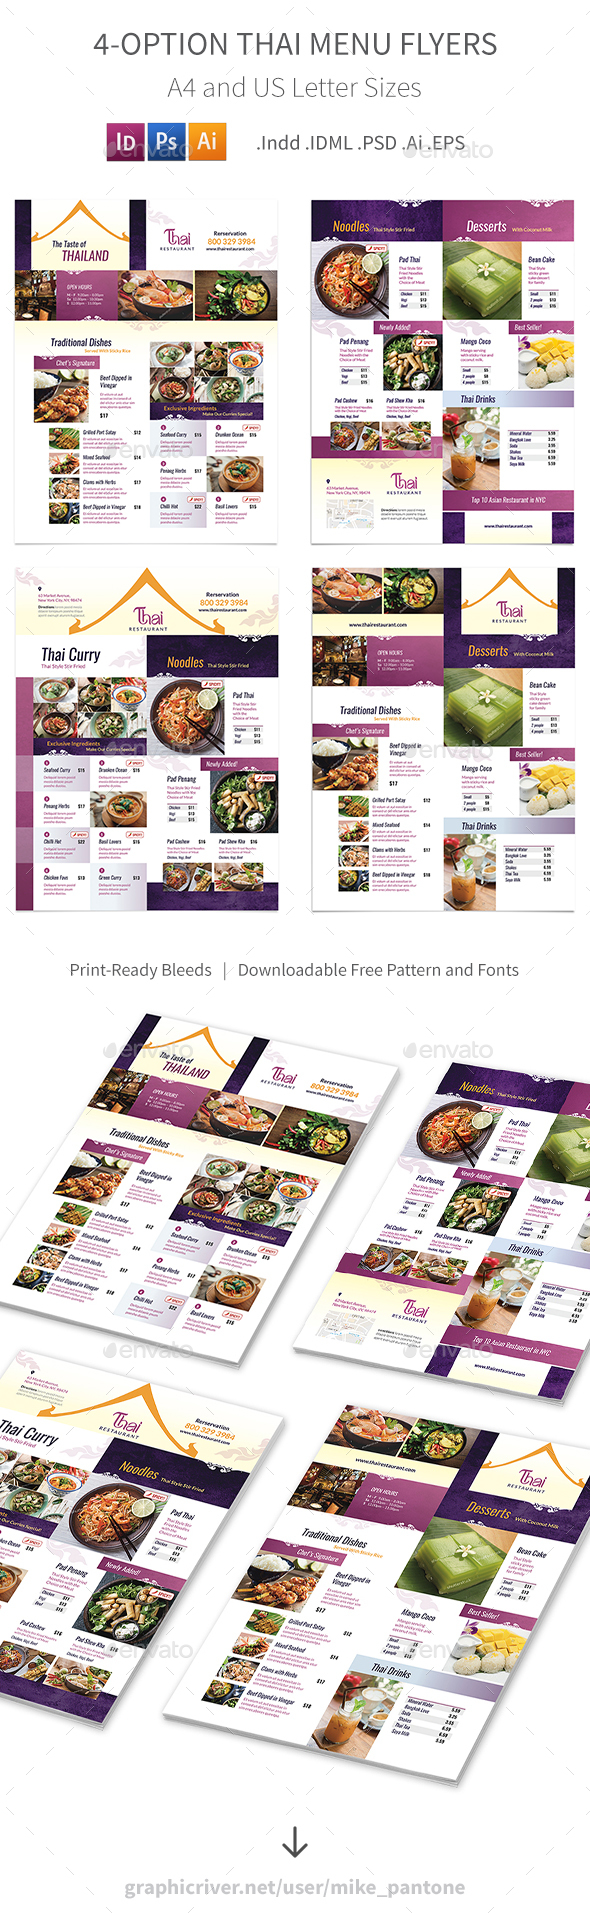 Thai Restaurant Menu Flyers 4 – 4 Options - Food Menus Print Templates